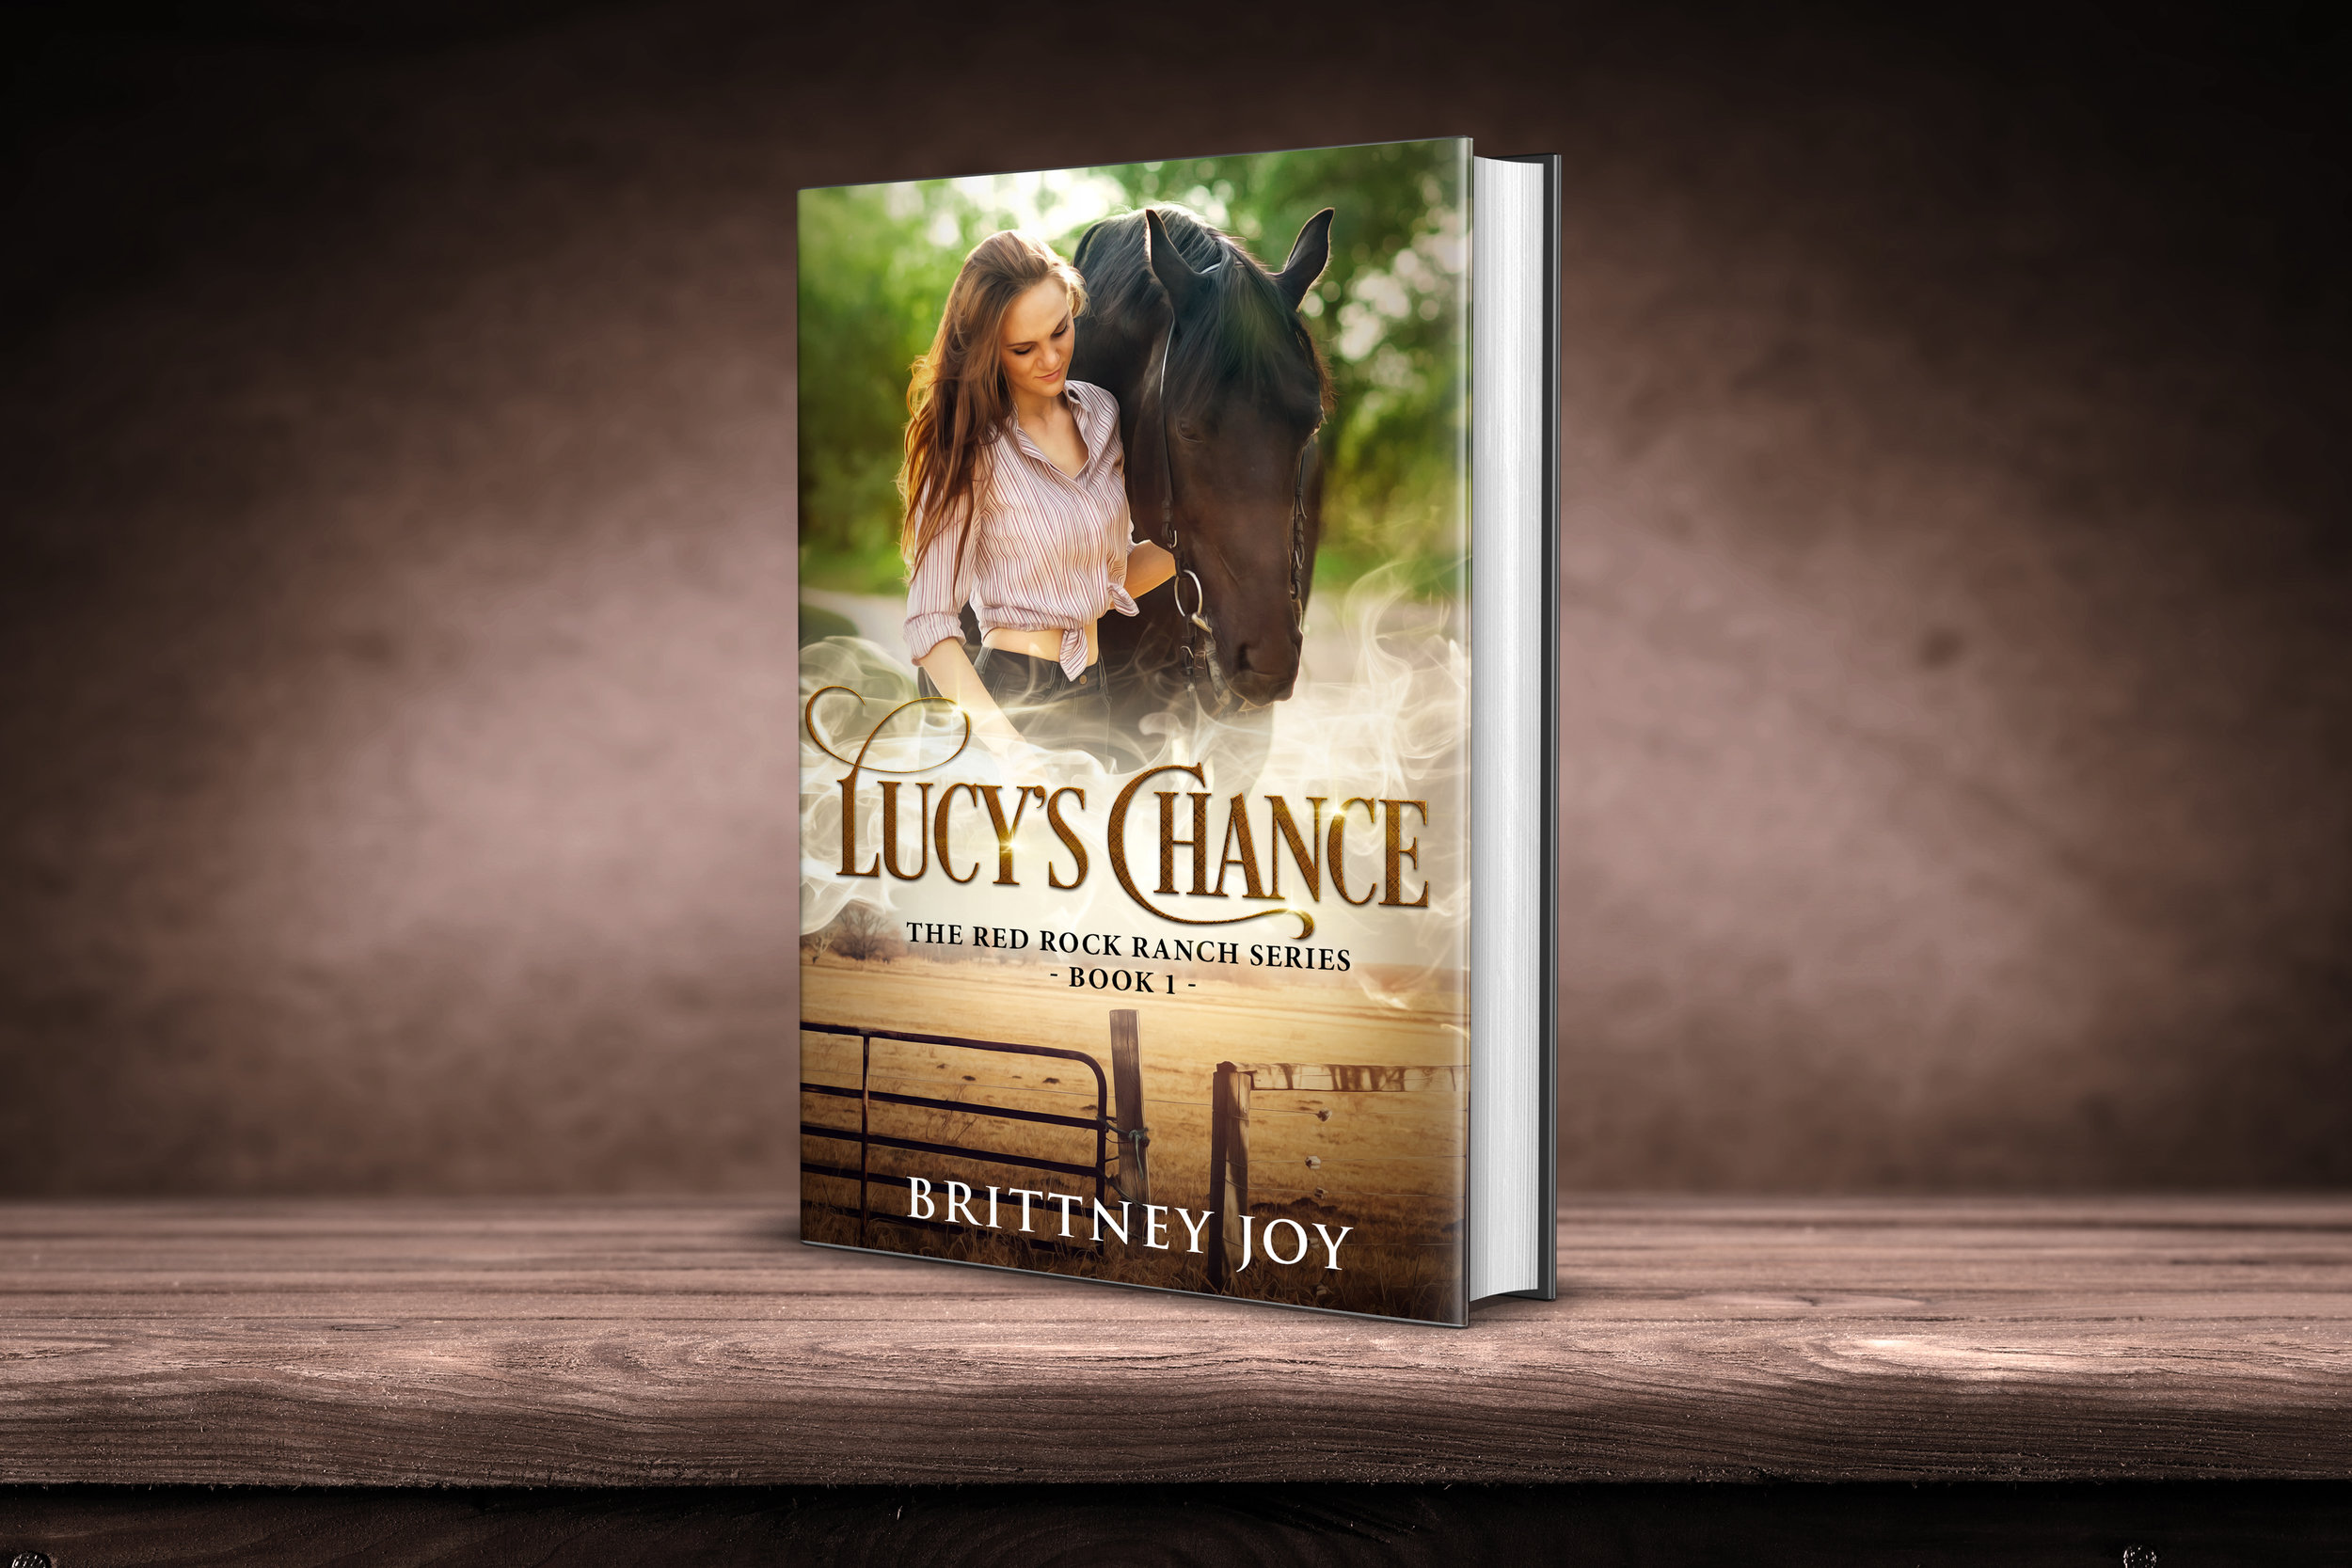 mockup_cover_LucysChance.jpg